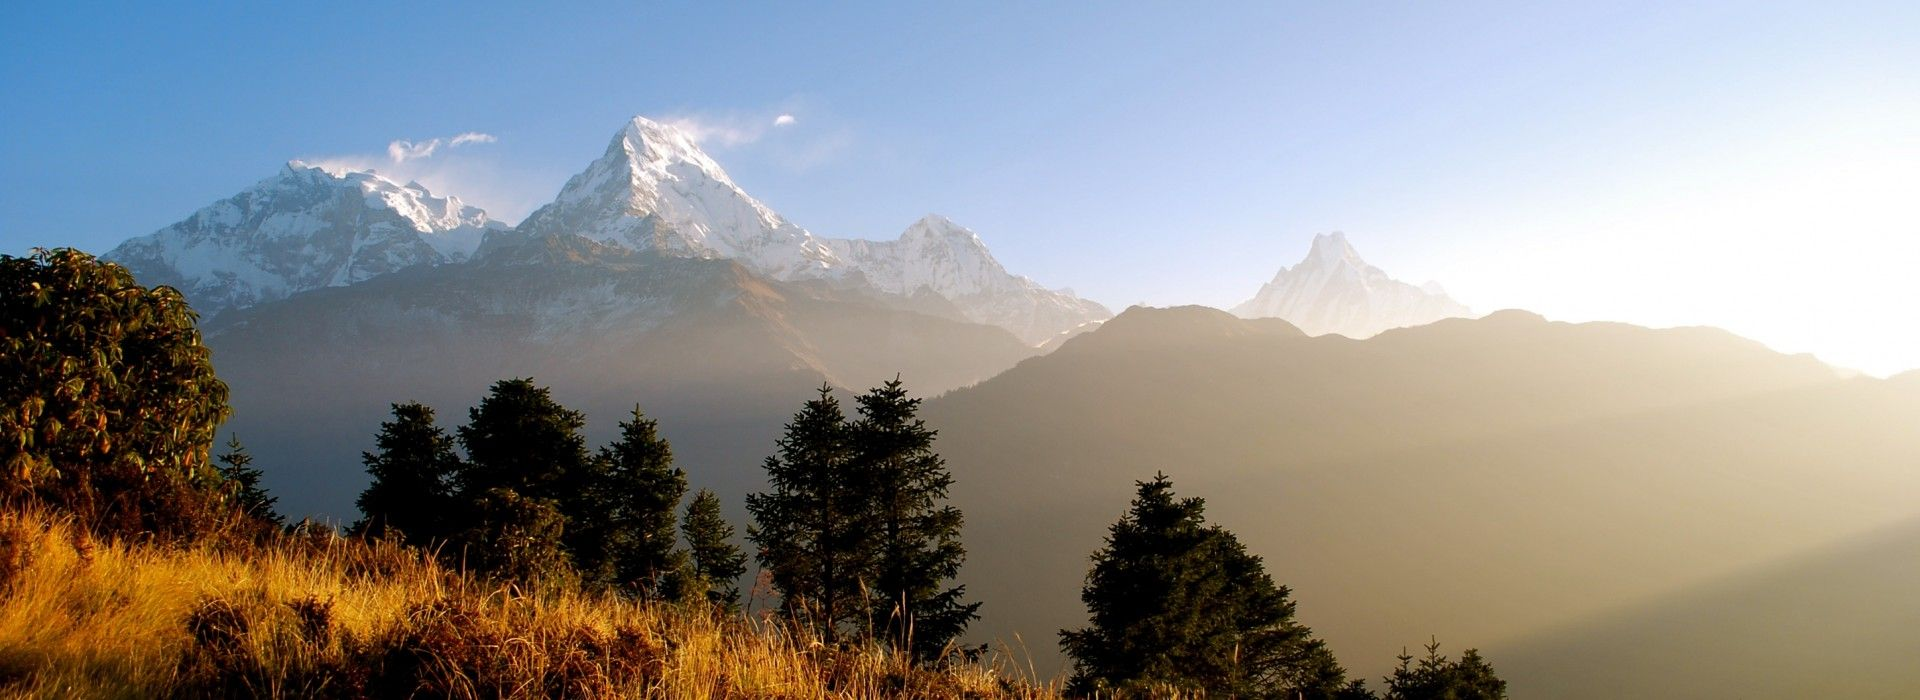 Sightseeing, attractions, culture and history Tours in Annapurna Circuit trek